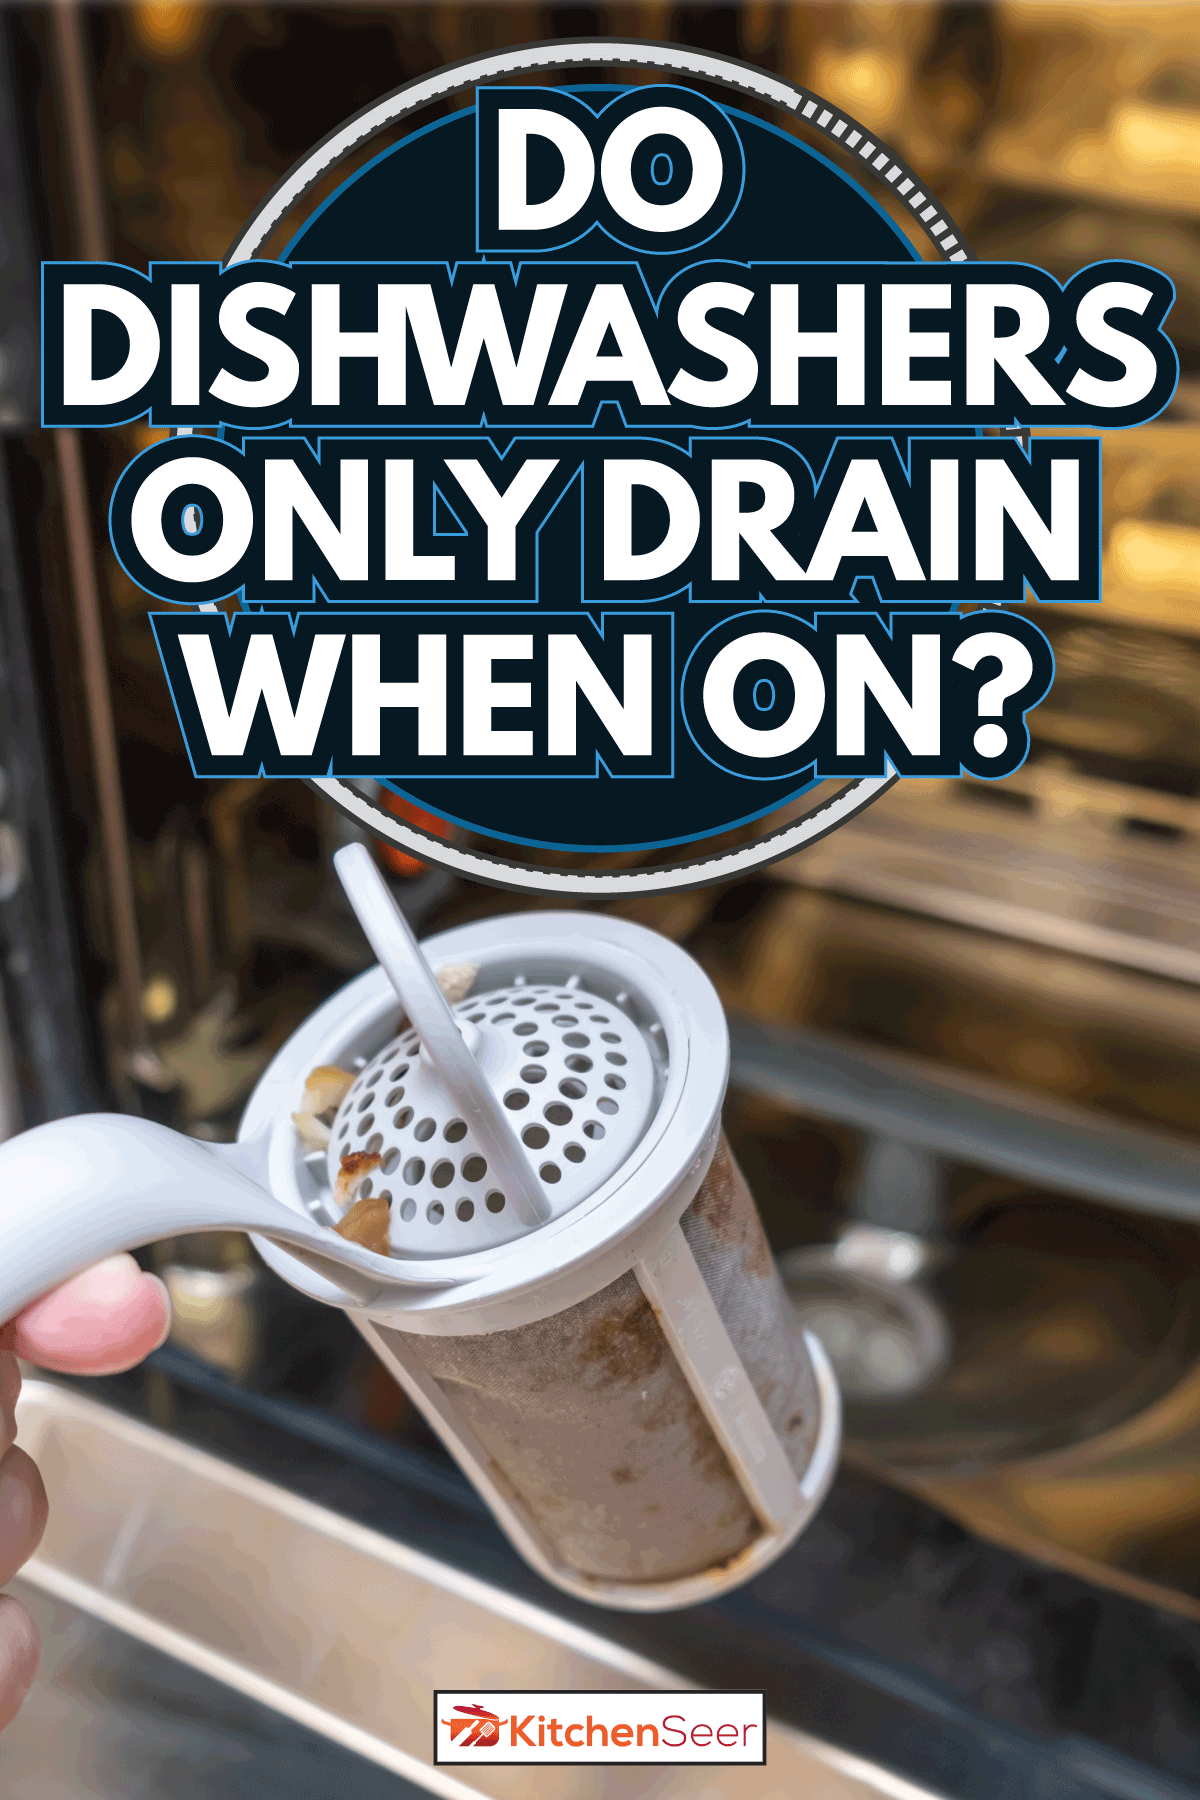 filter held by hand taken from a clogged dishwasher. Do Dishwashers Only Drain When On